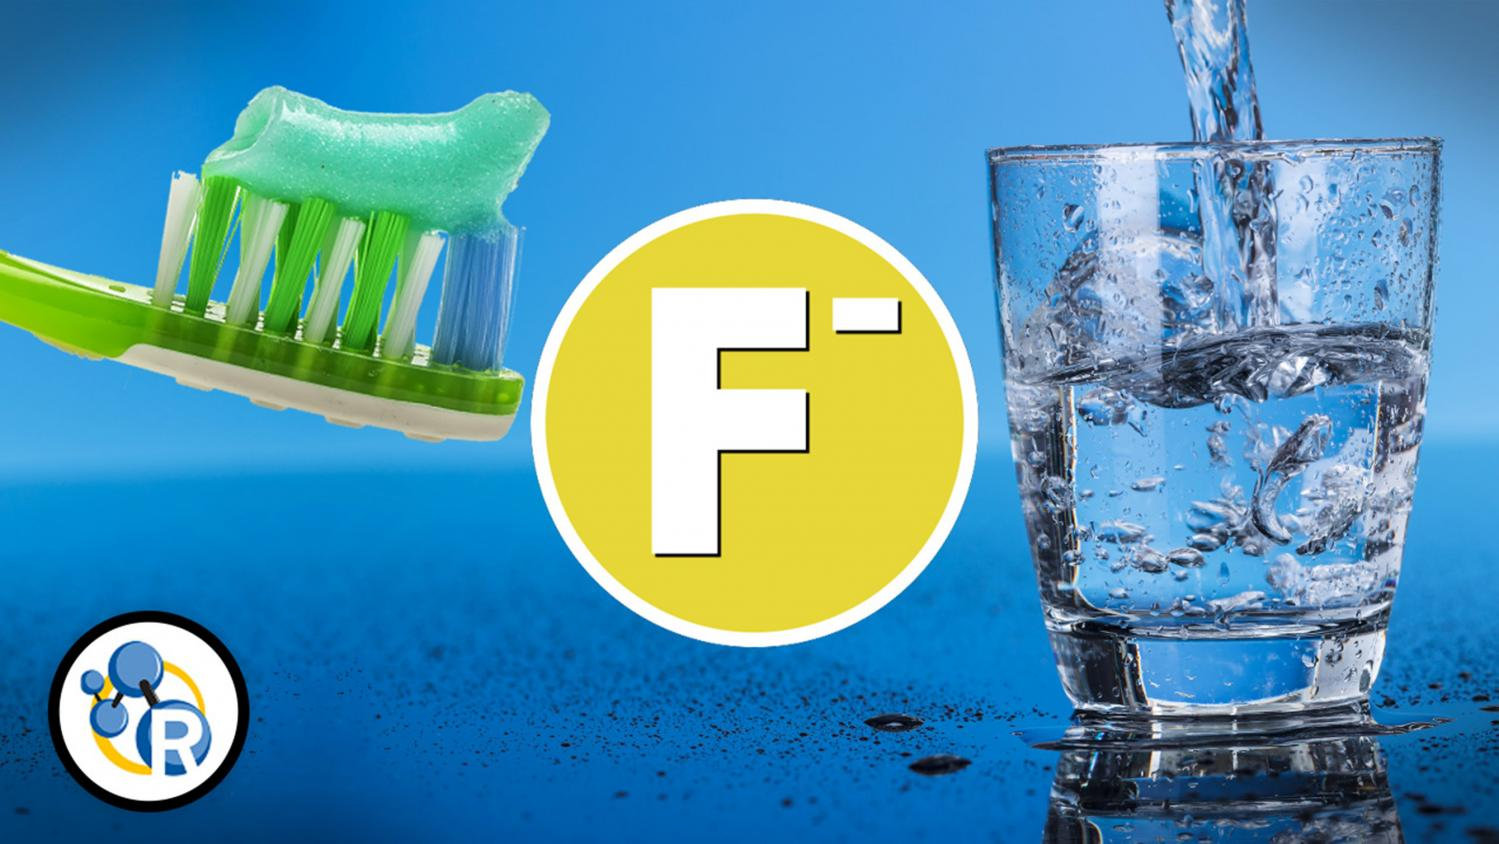 Is Fluoride Safe for your health?